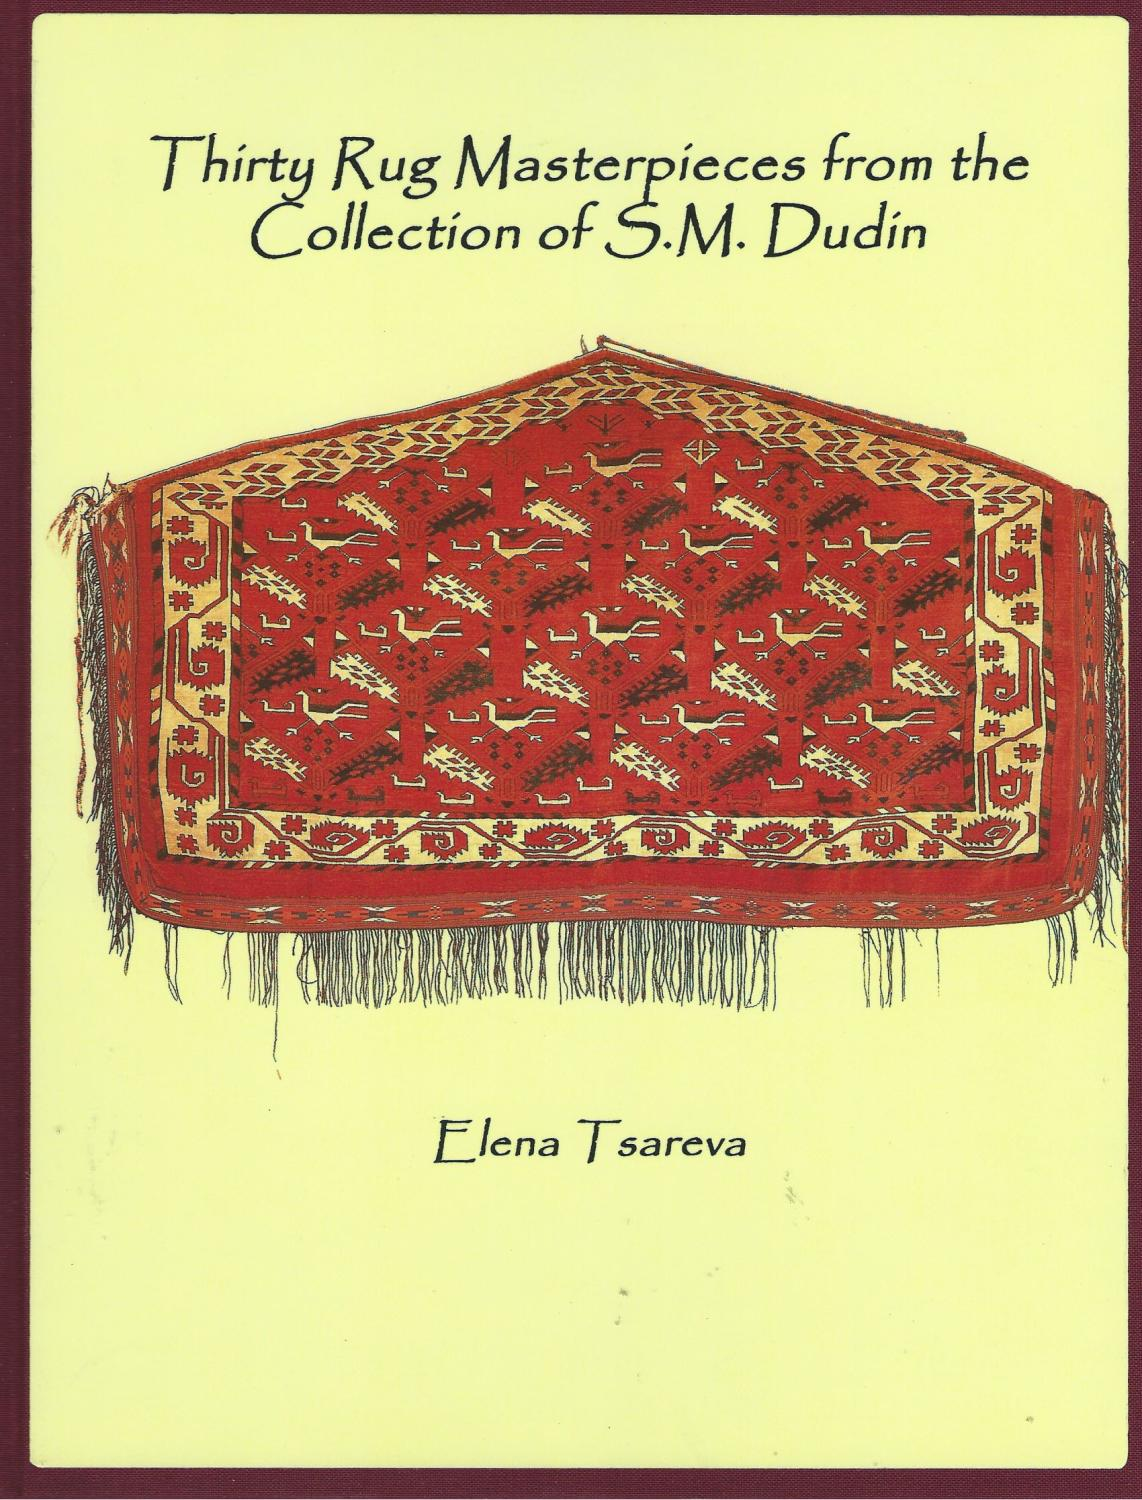 Thirty Rug Masterpieces from the Collection of S.M. Dudin